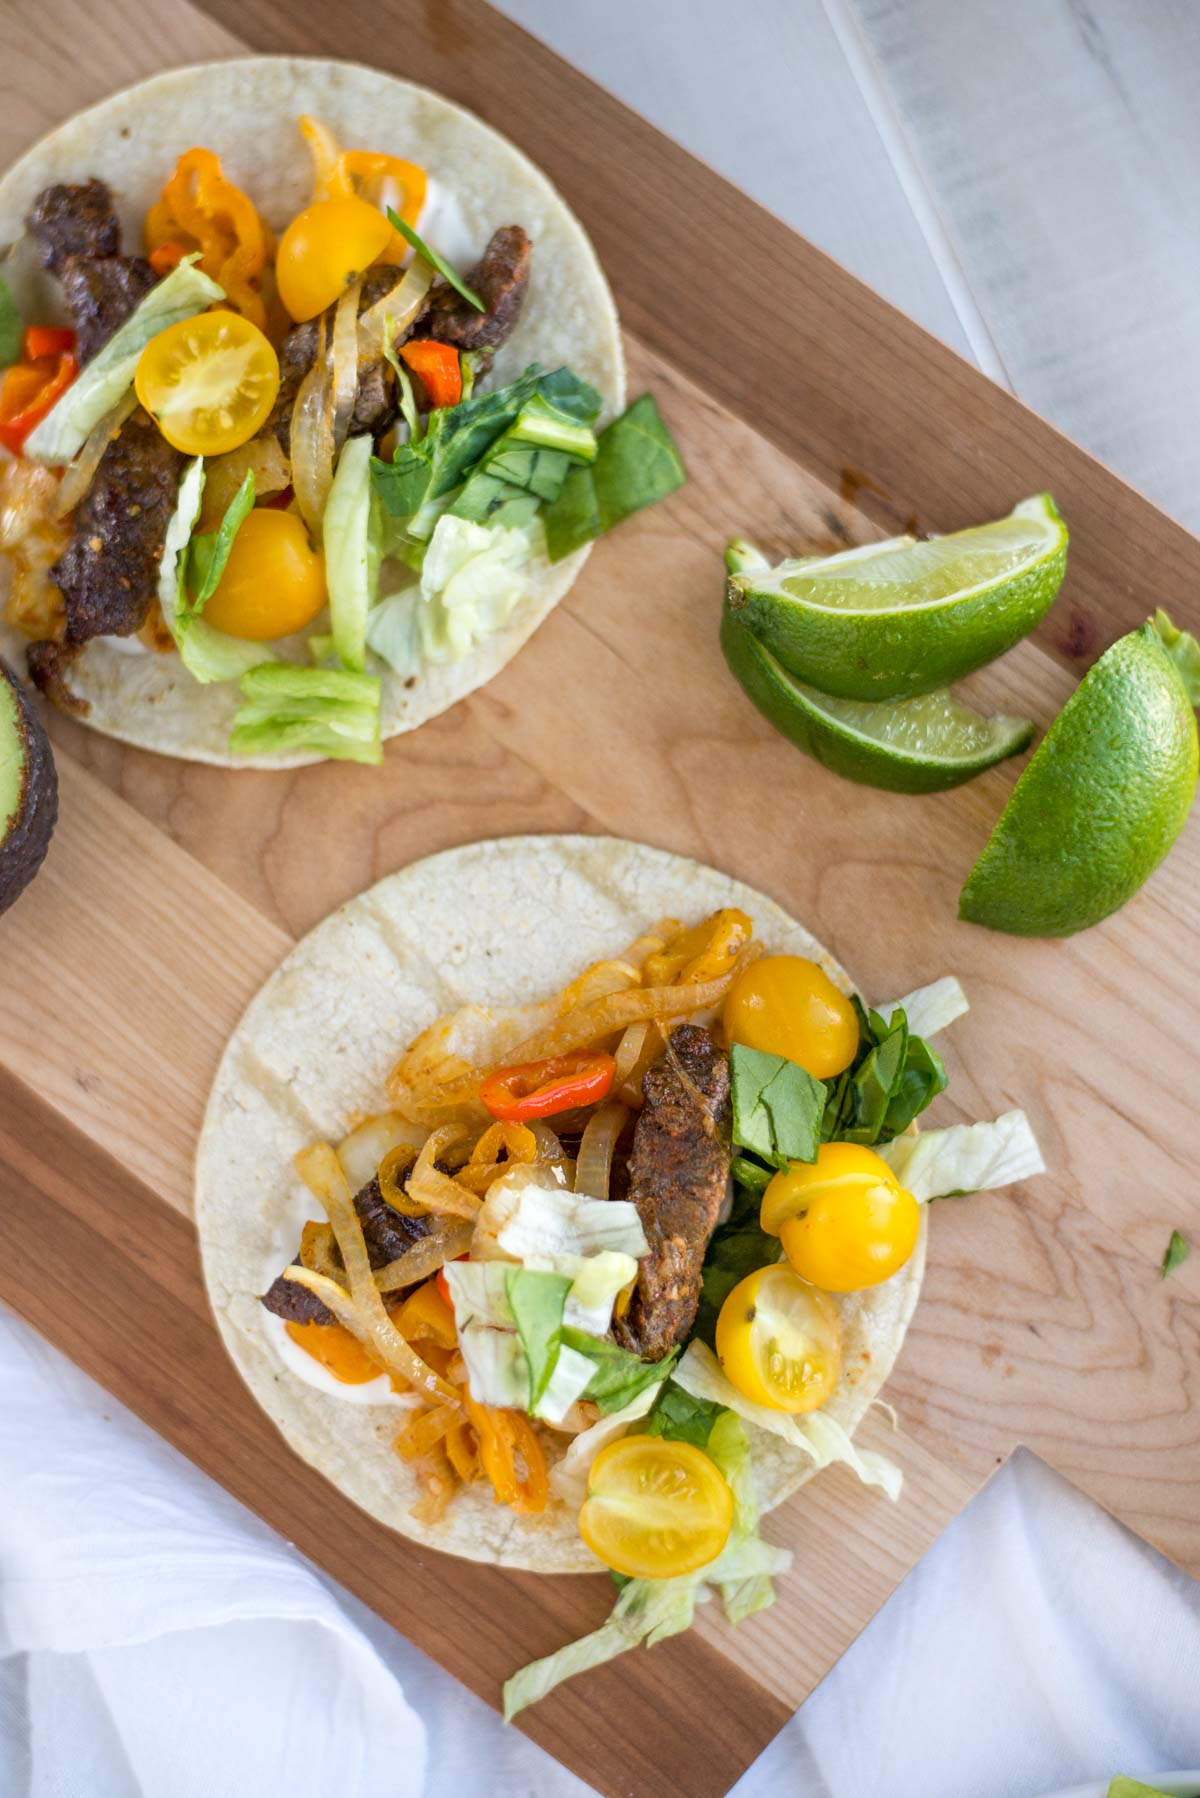 Who knew a meal this pretty could come from the freezer. Find out how here.